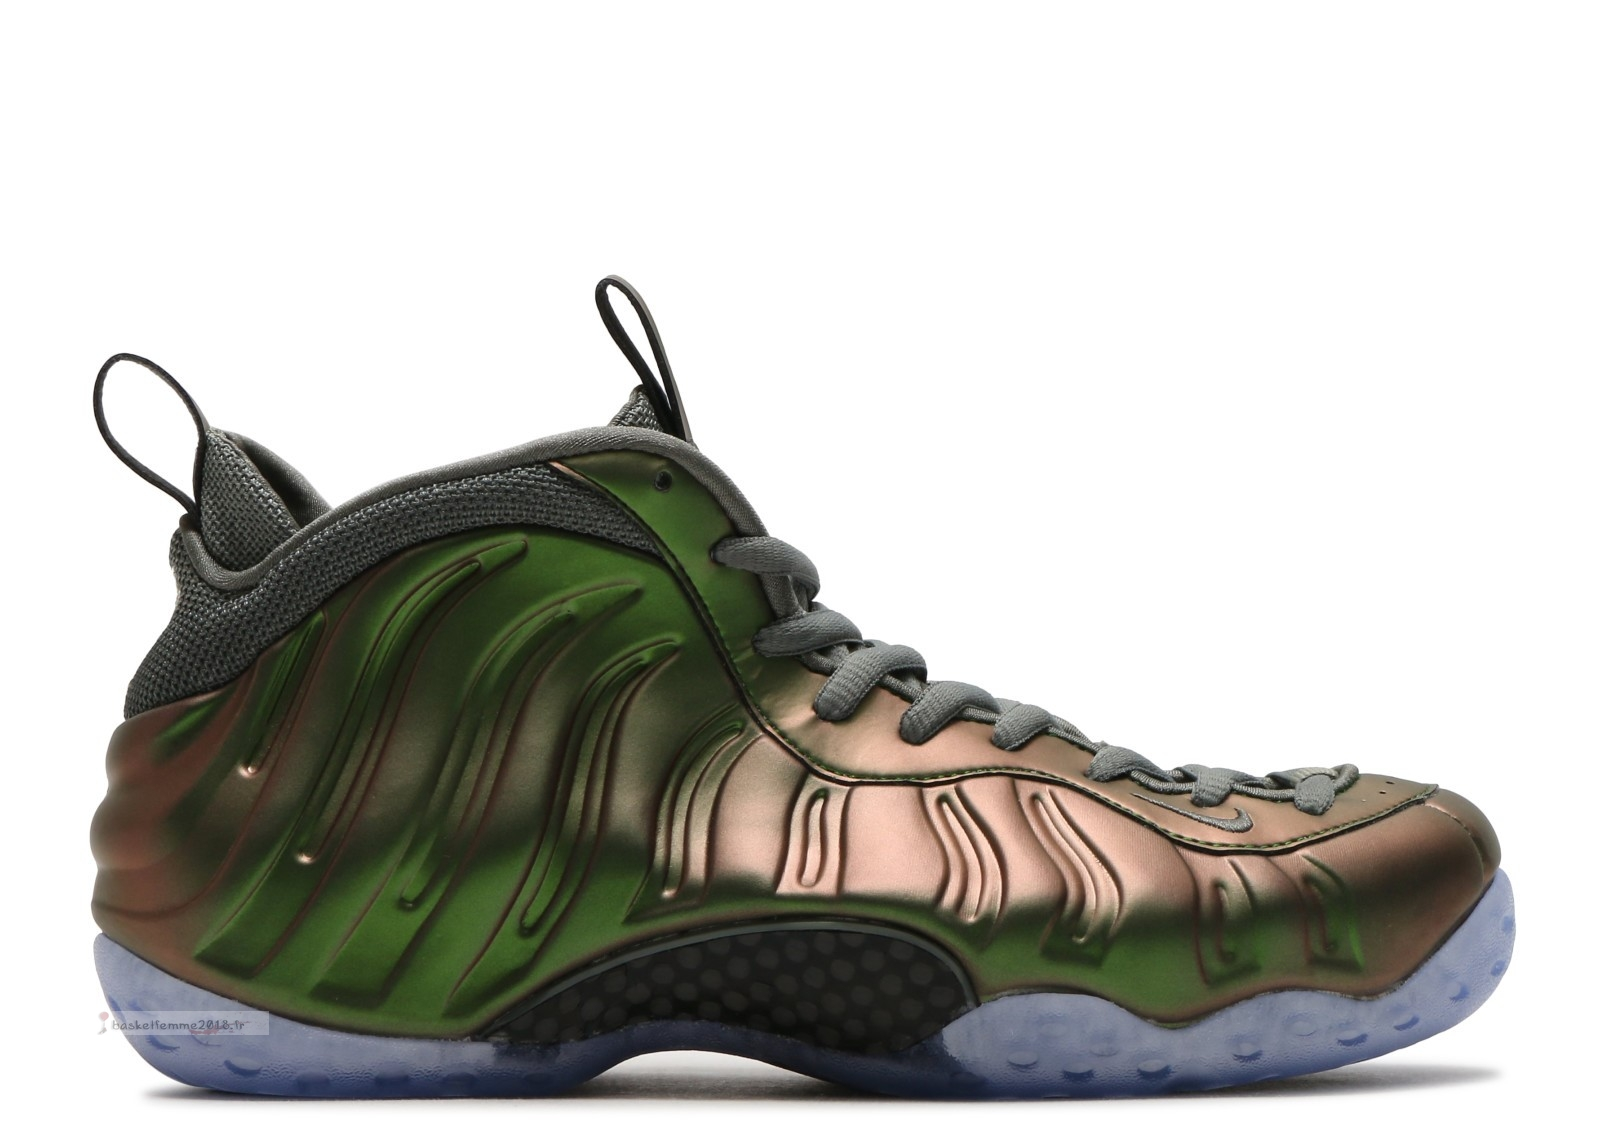 Nike Air Foamposite One Femme Vert Or (aa3963-001) Chaussure de Basket